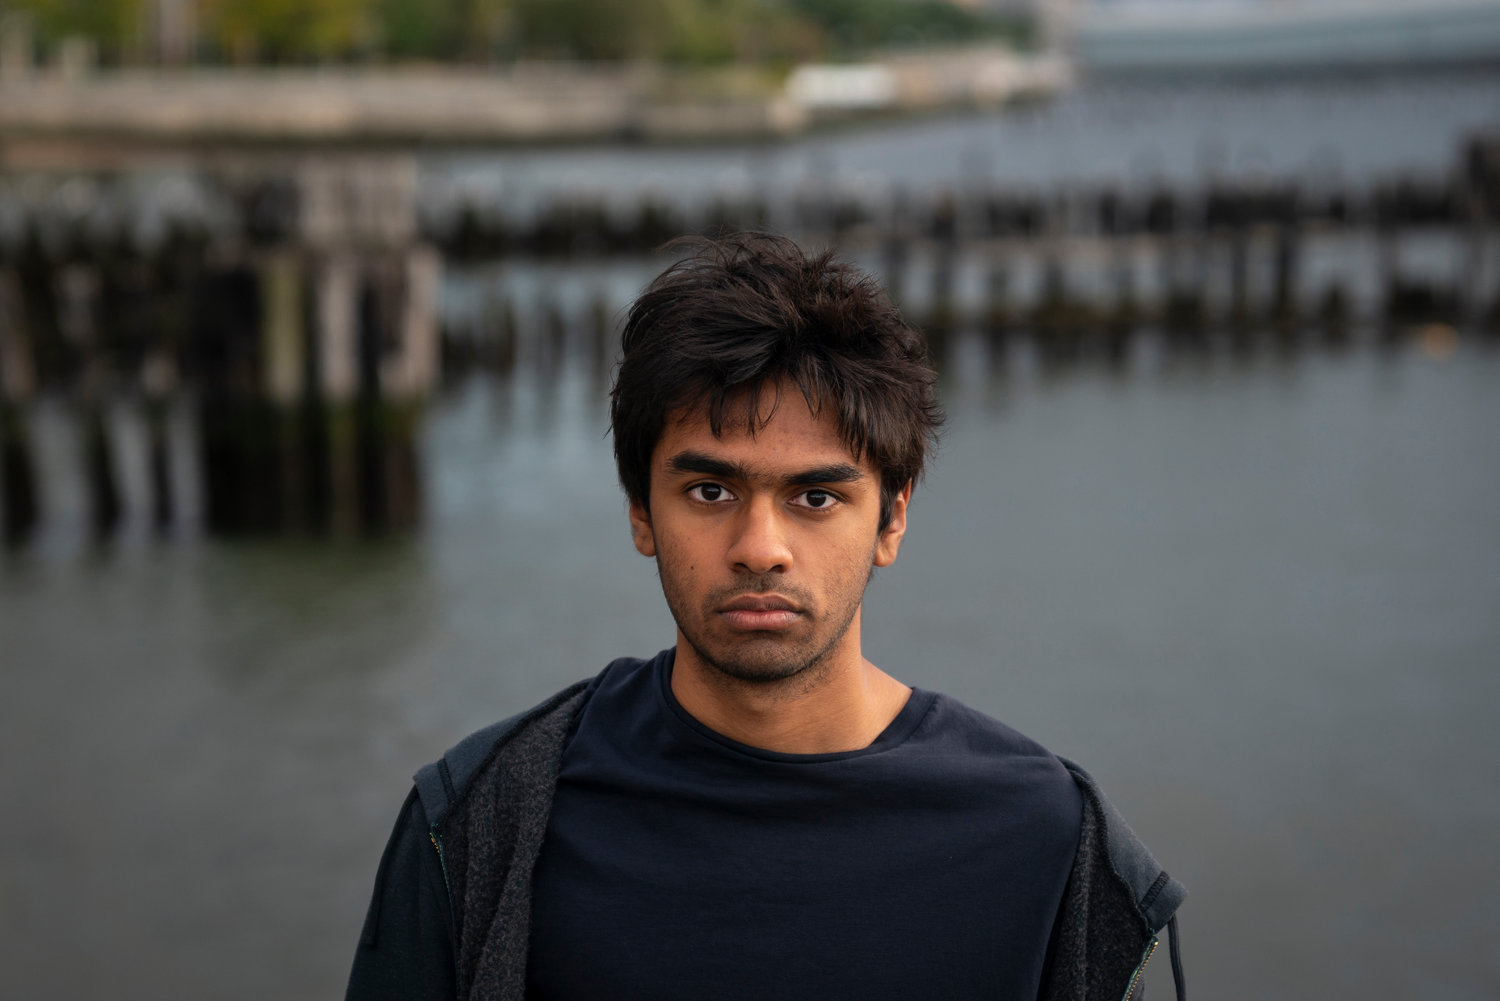 Even though he thinks the world has recently been stressing math and science-based disciplines, Riverdale Country School senior Vishnu Bharathram believes there is still value in creative writing and the humanities in general. This belief led him to create the Scribe Writing Contest this past spring.